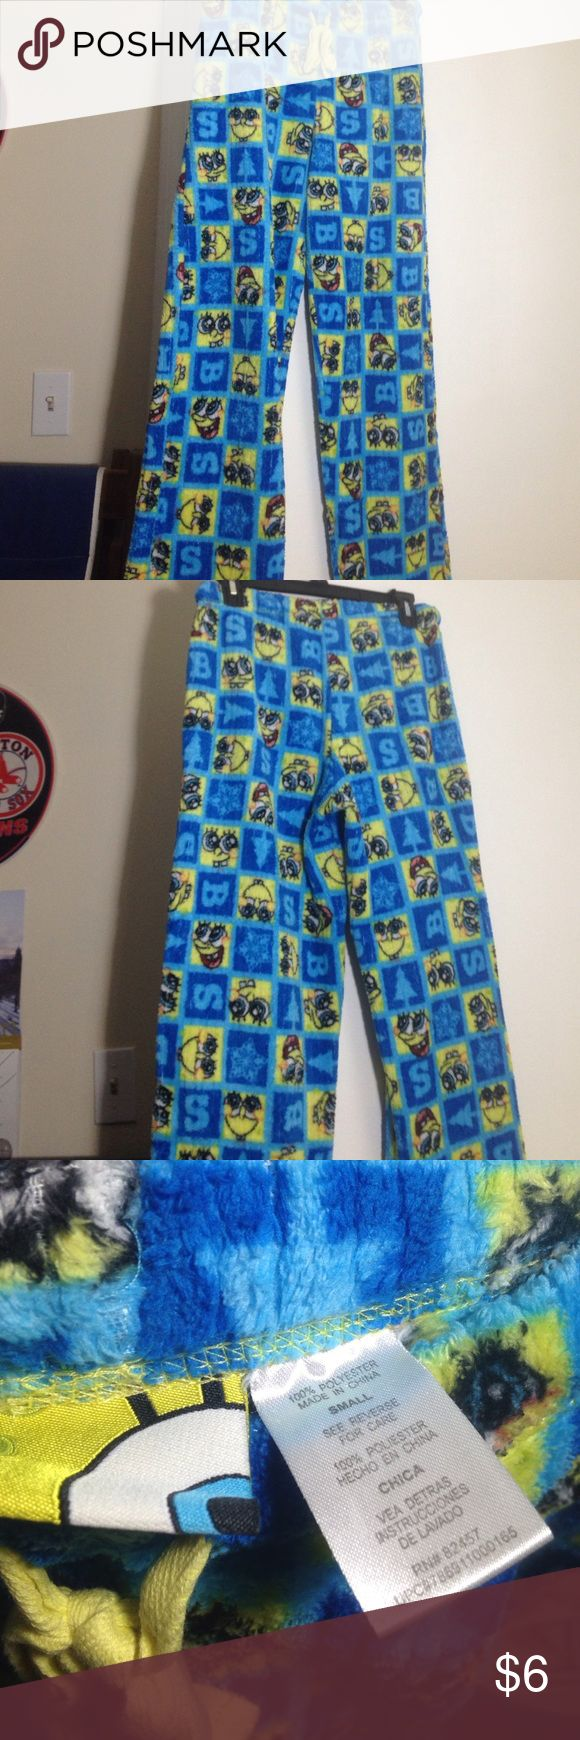 SpongeBob pajama pants, Size Small SpongeBob pajama pants, size small. Gently worn. More for appearance than warmth. Cute for anyone who's a fan! SpongeBob Squarepants Intimates & Sleepwear Pajamas